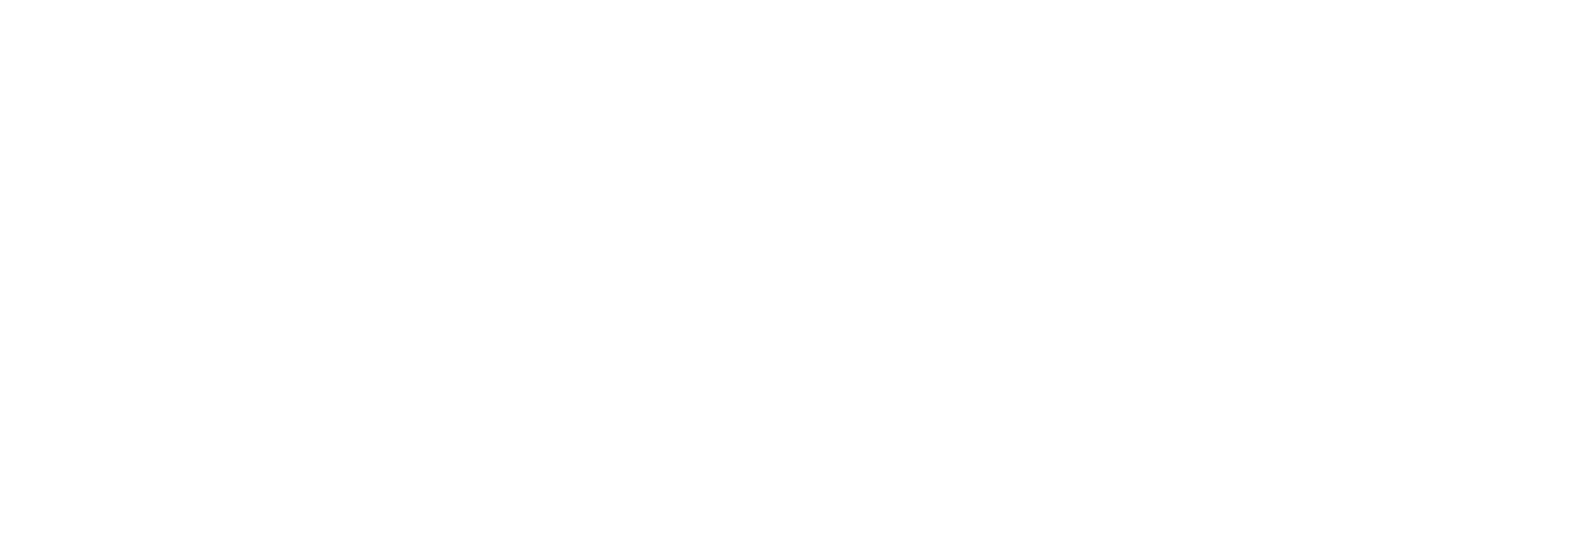 The Toy Talk Guys Blog and Podcast